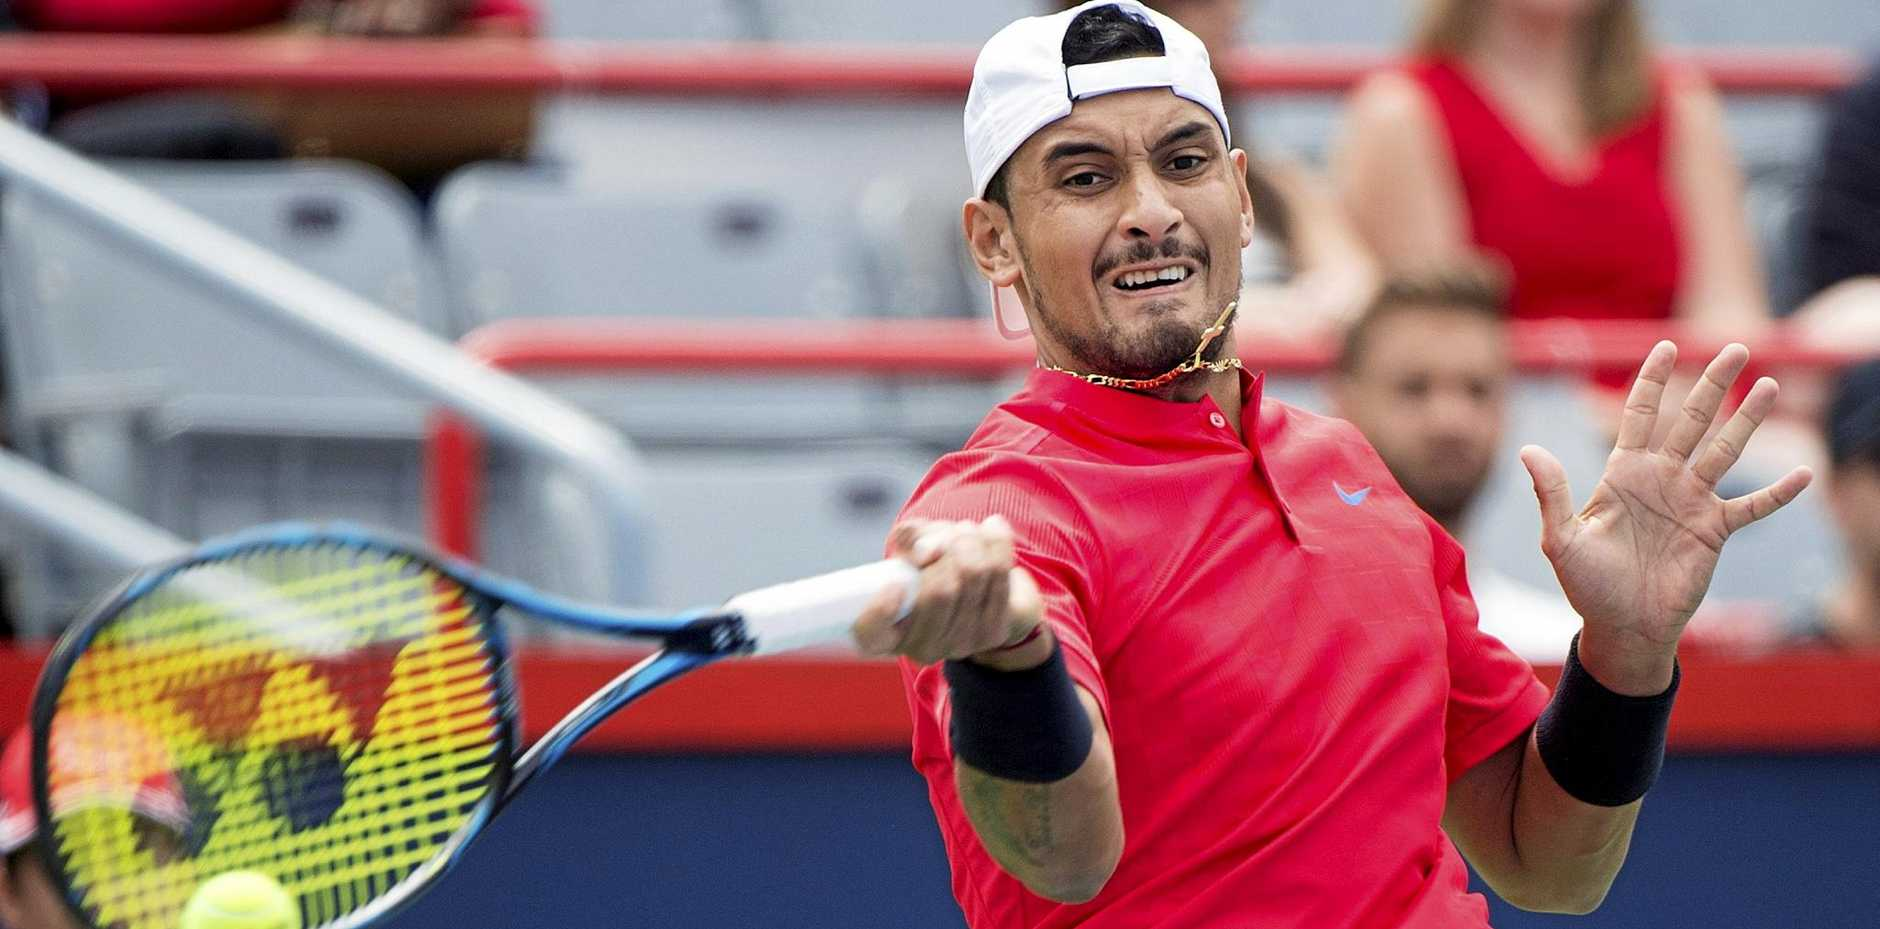 Nick Kyrgios in action against Viktor Troicki at the Rogers Cup tennis tournament in Montreal.